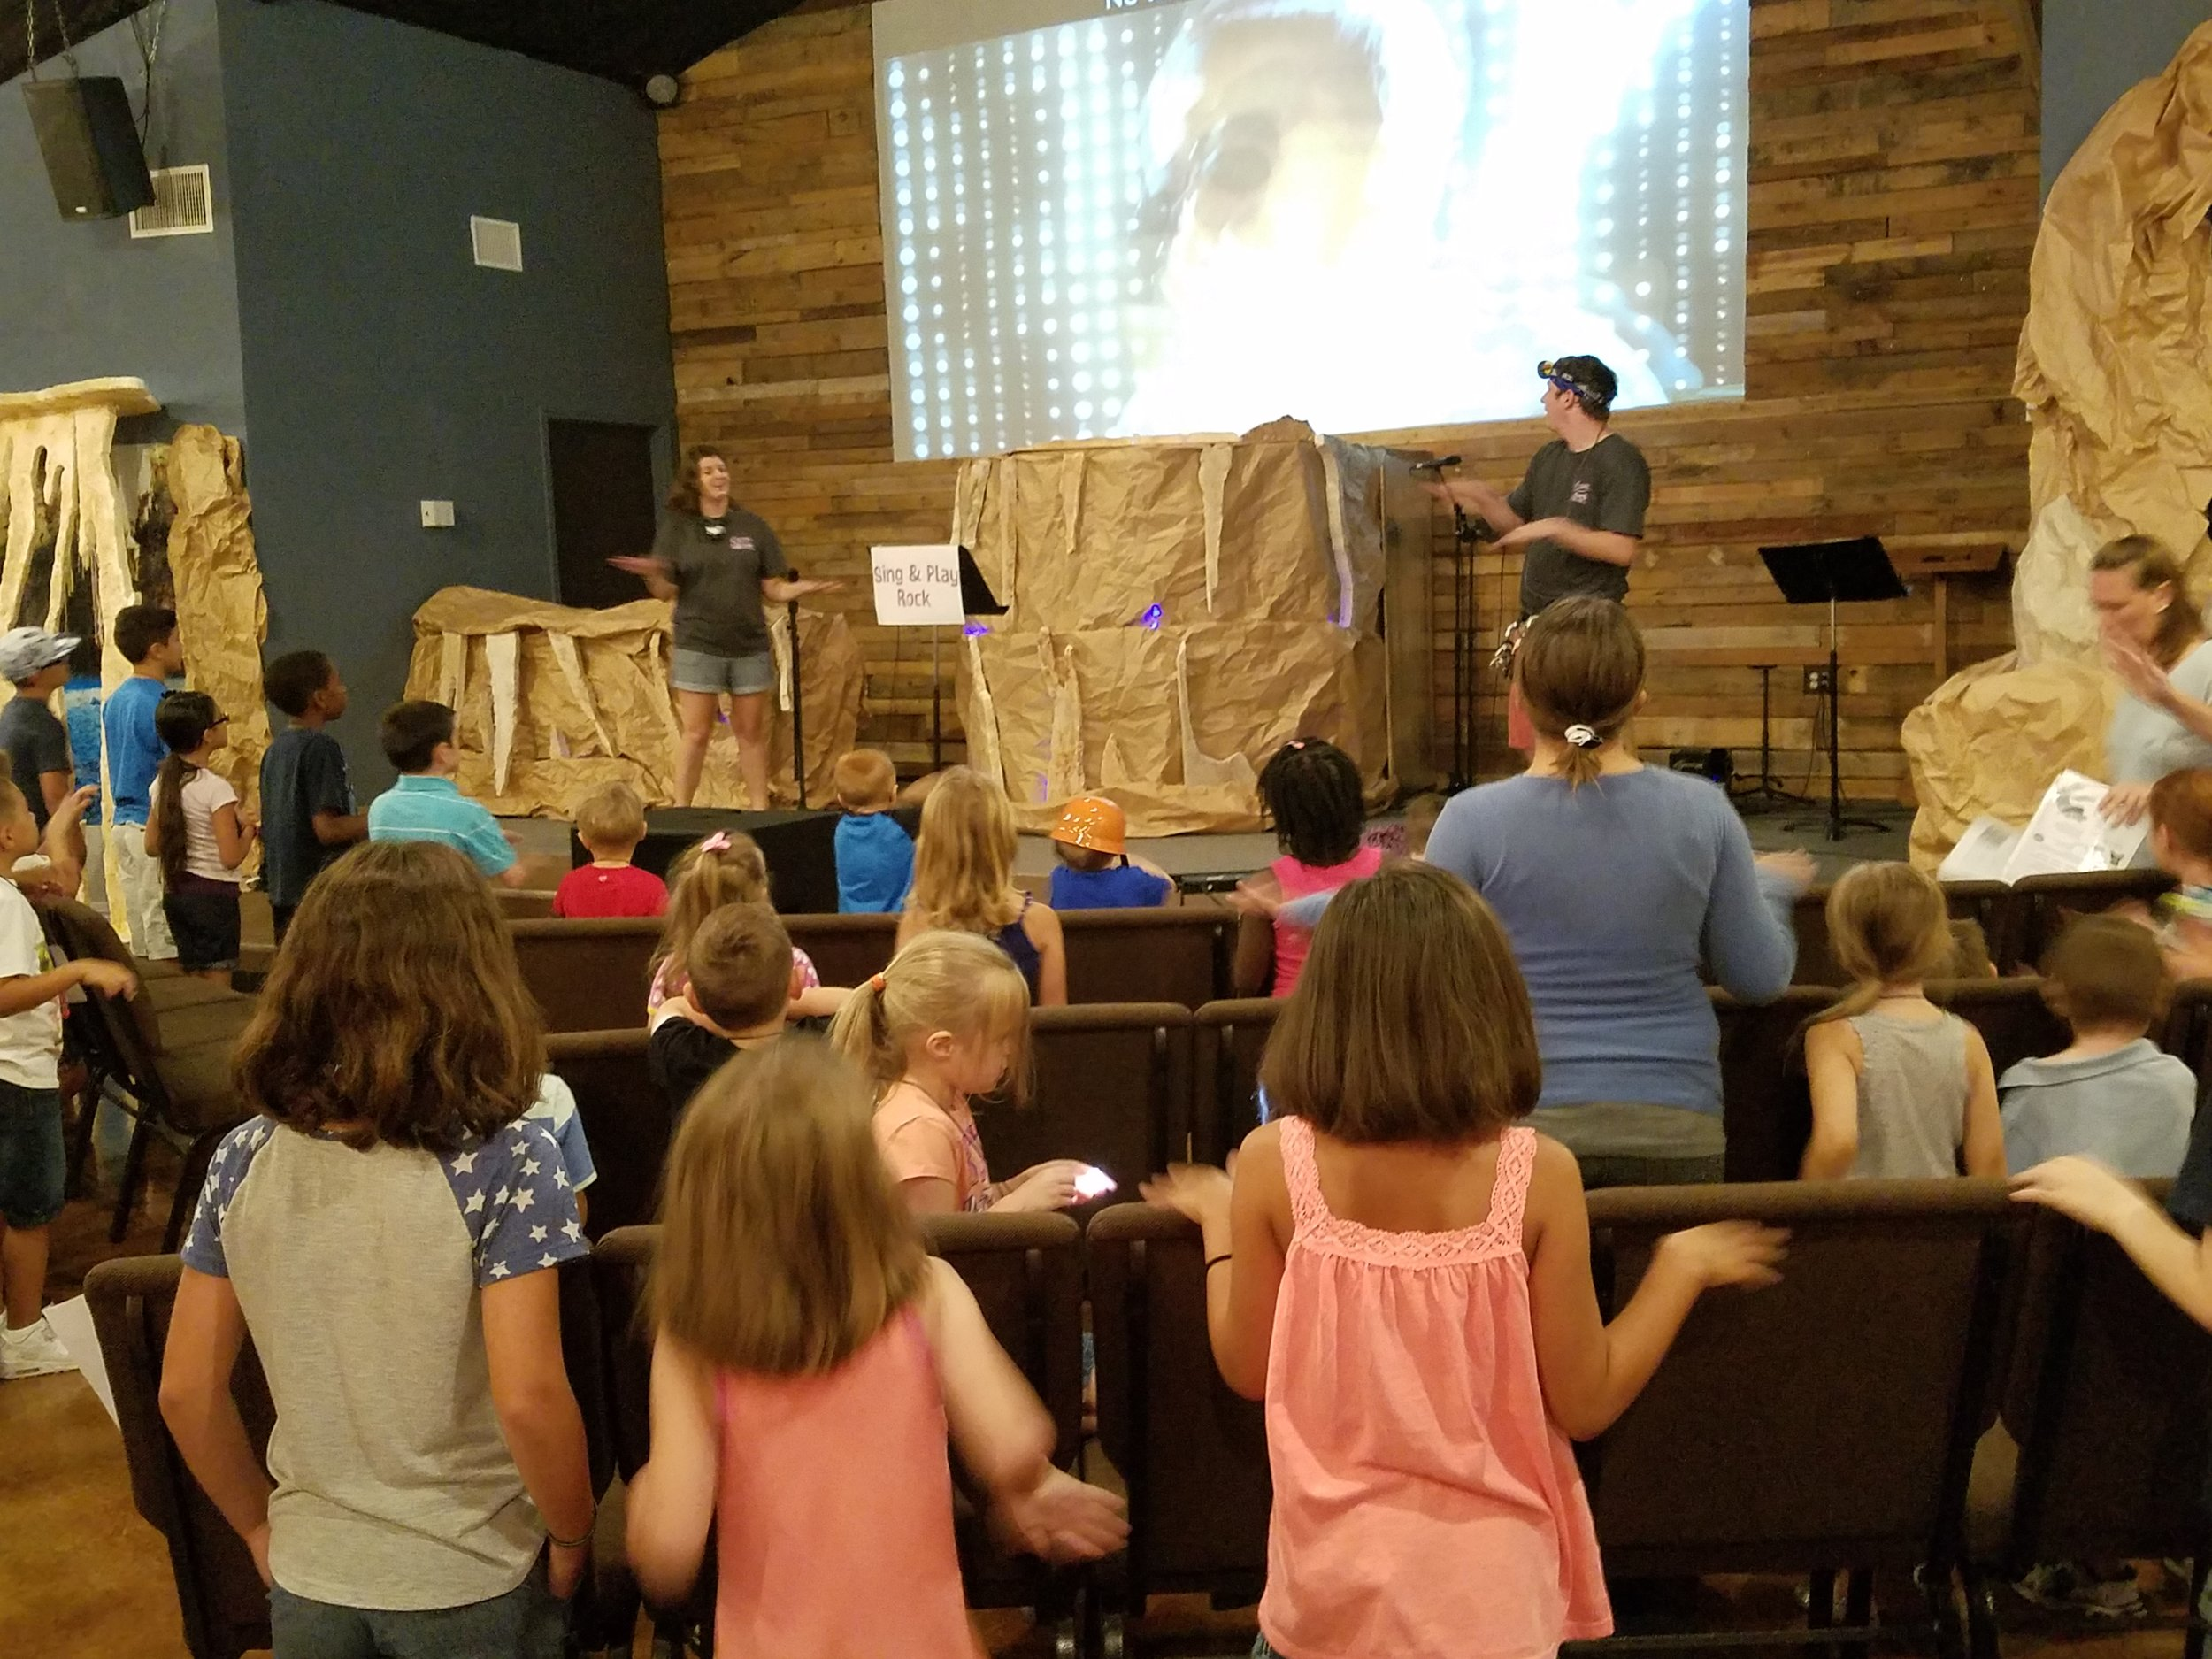 Journey Kids - At Journey Kids we desire for Christ to be known and experienced on a level that kids can learn and explore the amazing grace of God.  Follow the link below for more information on our Journey Kids Ministry.